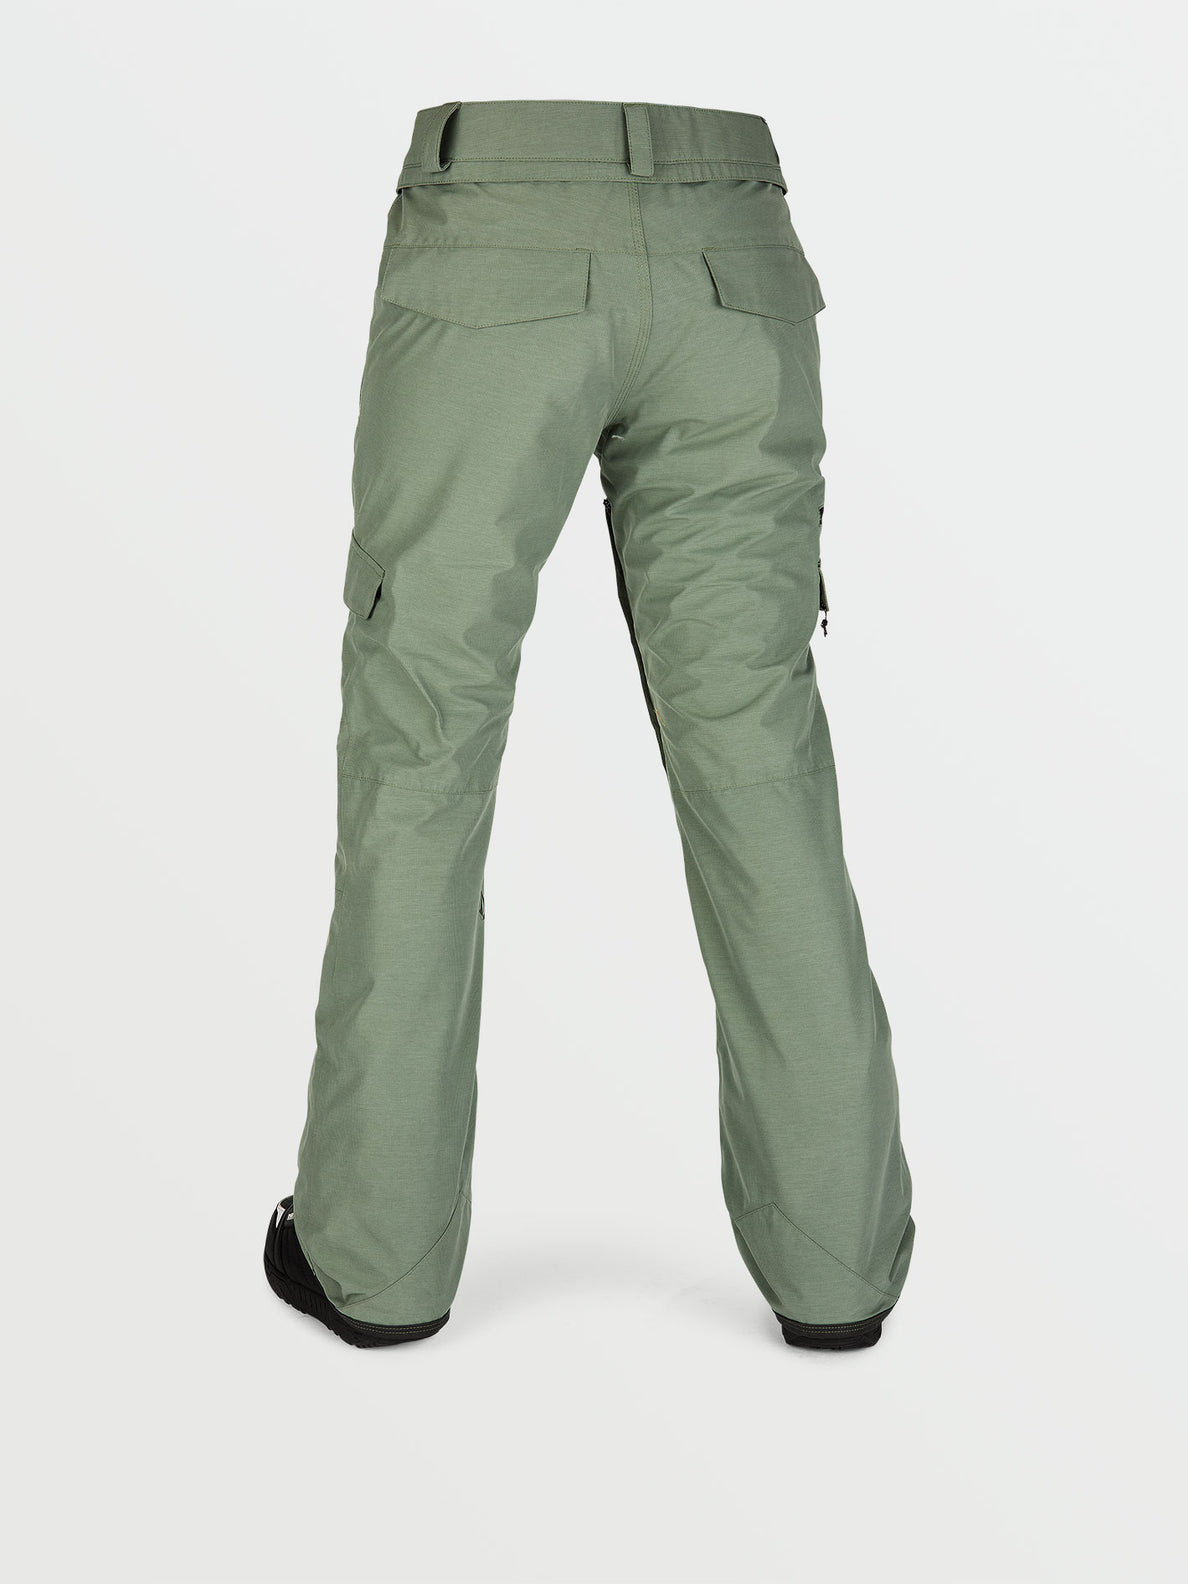 Womens Aston GORE-TEX Pants - Dusty Green (H1352102_DGN) [B]